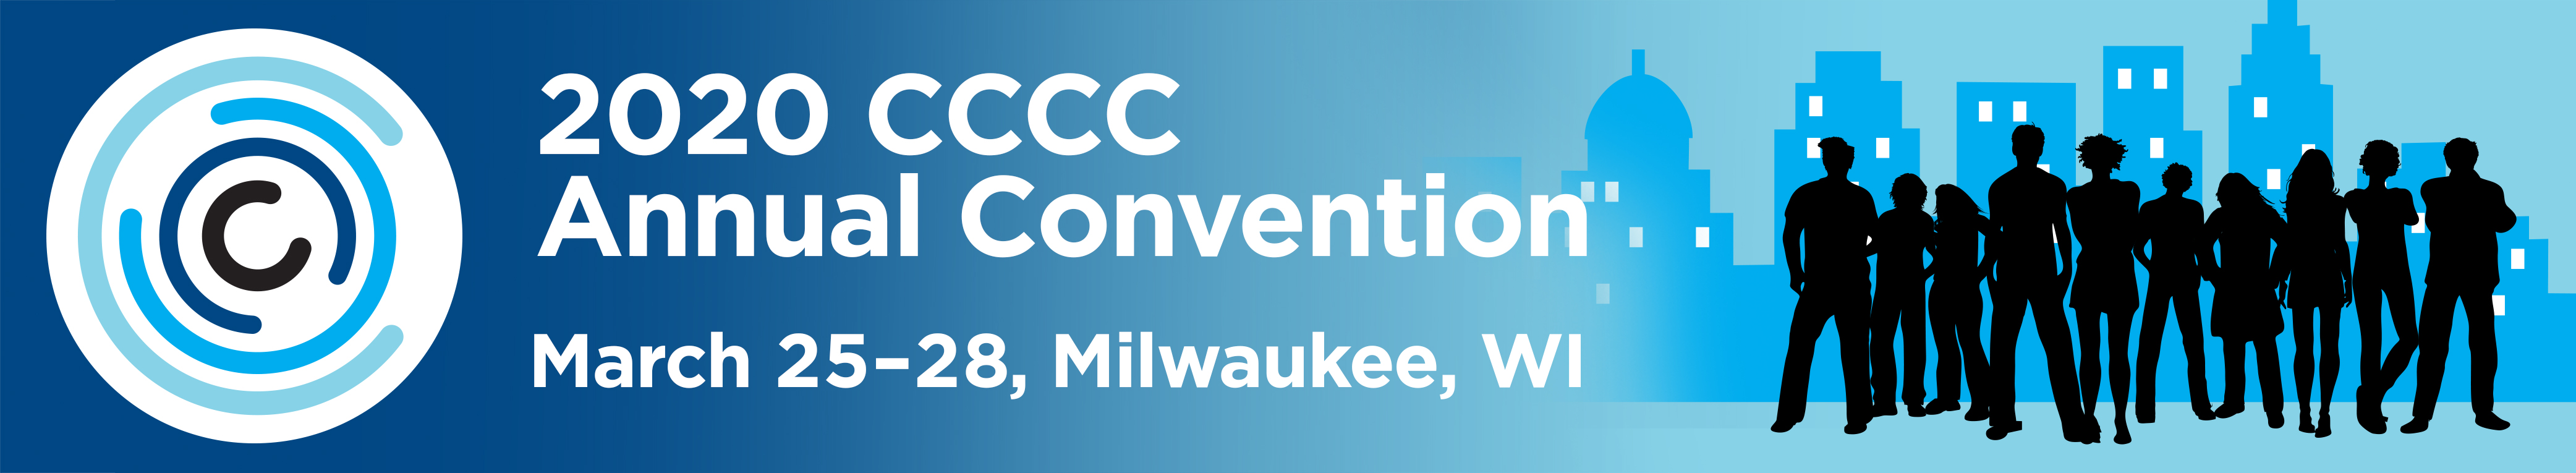 CCCC Conventions and Meetings - Conference on College